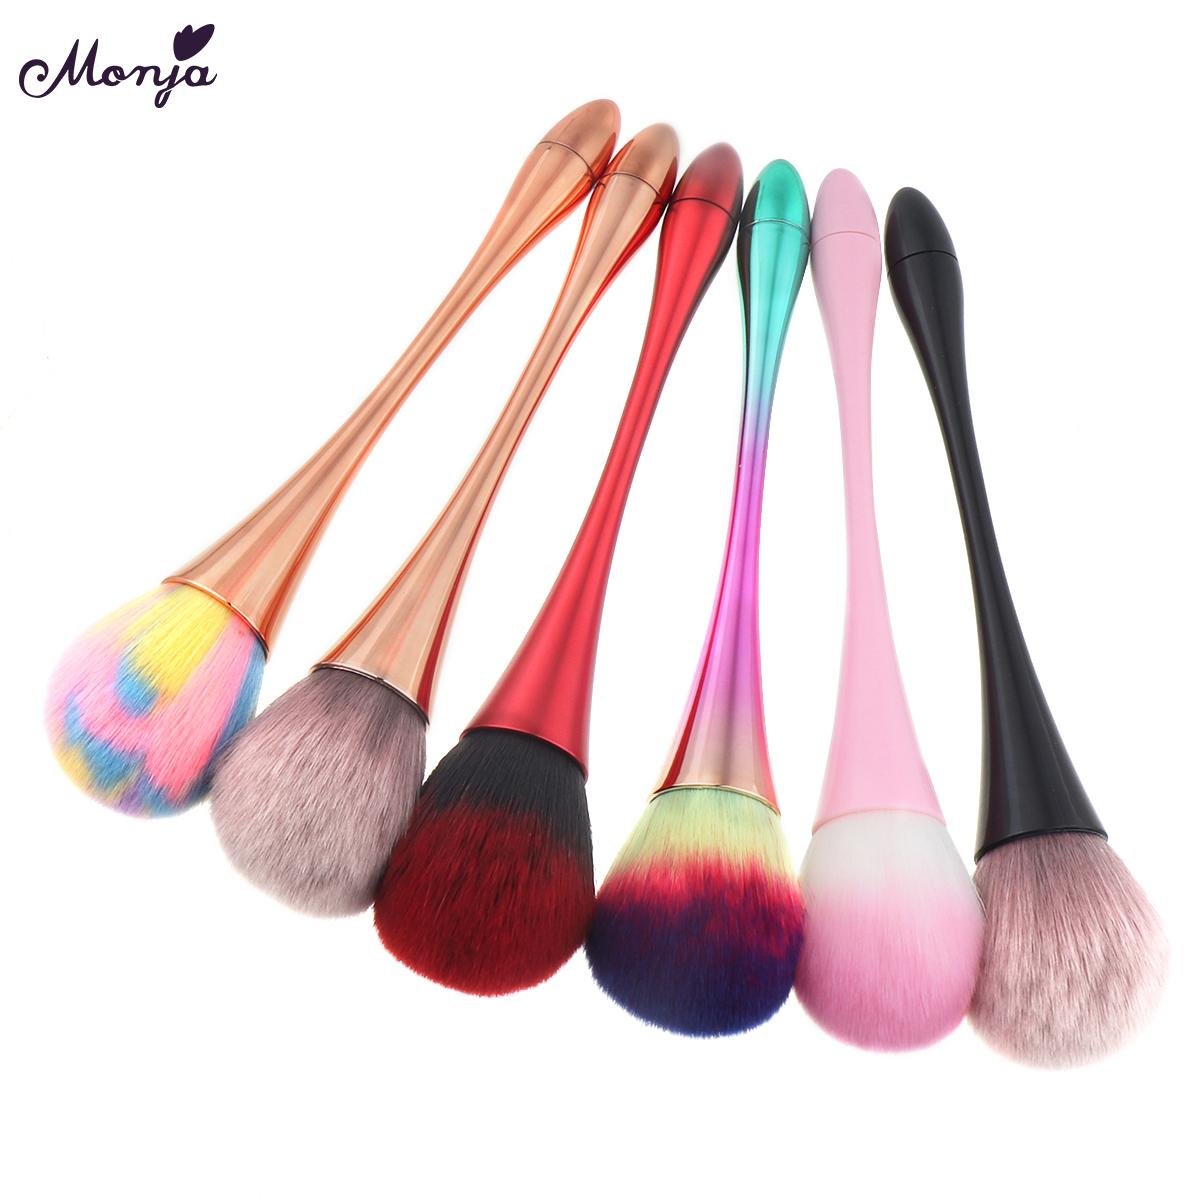 Nail Brushes Monja Aluminum Handle Nail Soft Dust Cleaner Cleaning Brush Acrylic UV Gel Powder Removal Manicure Tools